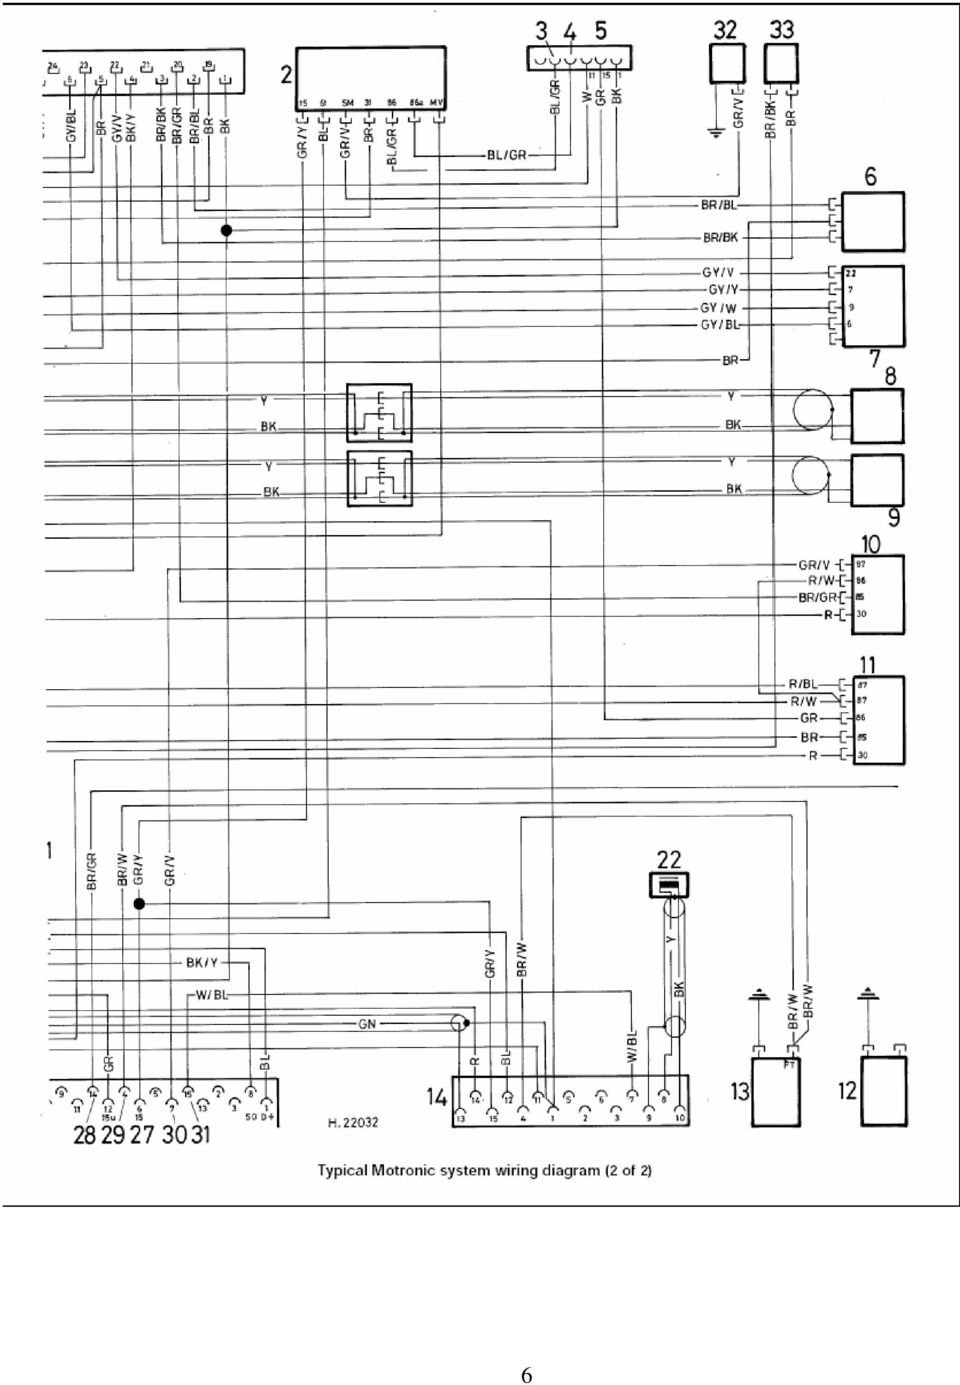 medium resolution of 7 key to motronic engine control system wiring diagram picture 1 1 1 2 1 electronic control unit ecu 18 distributor 2 speed control relay 19